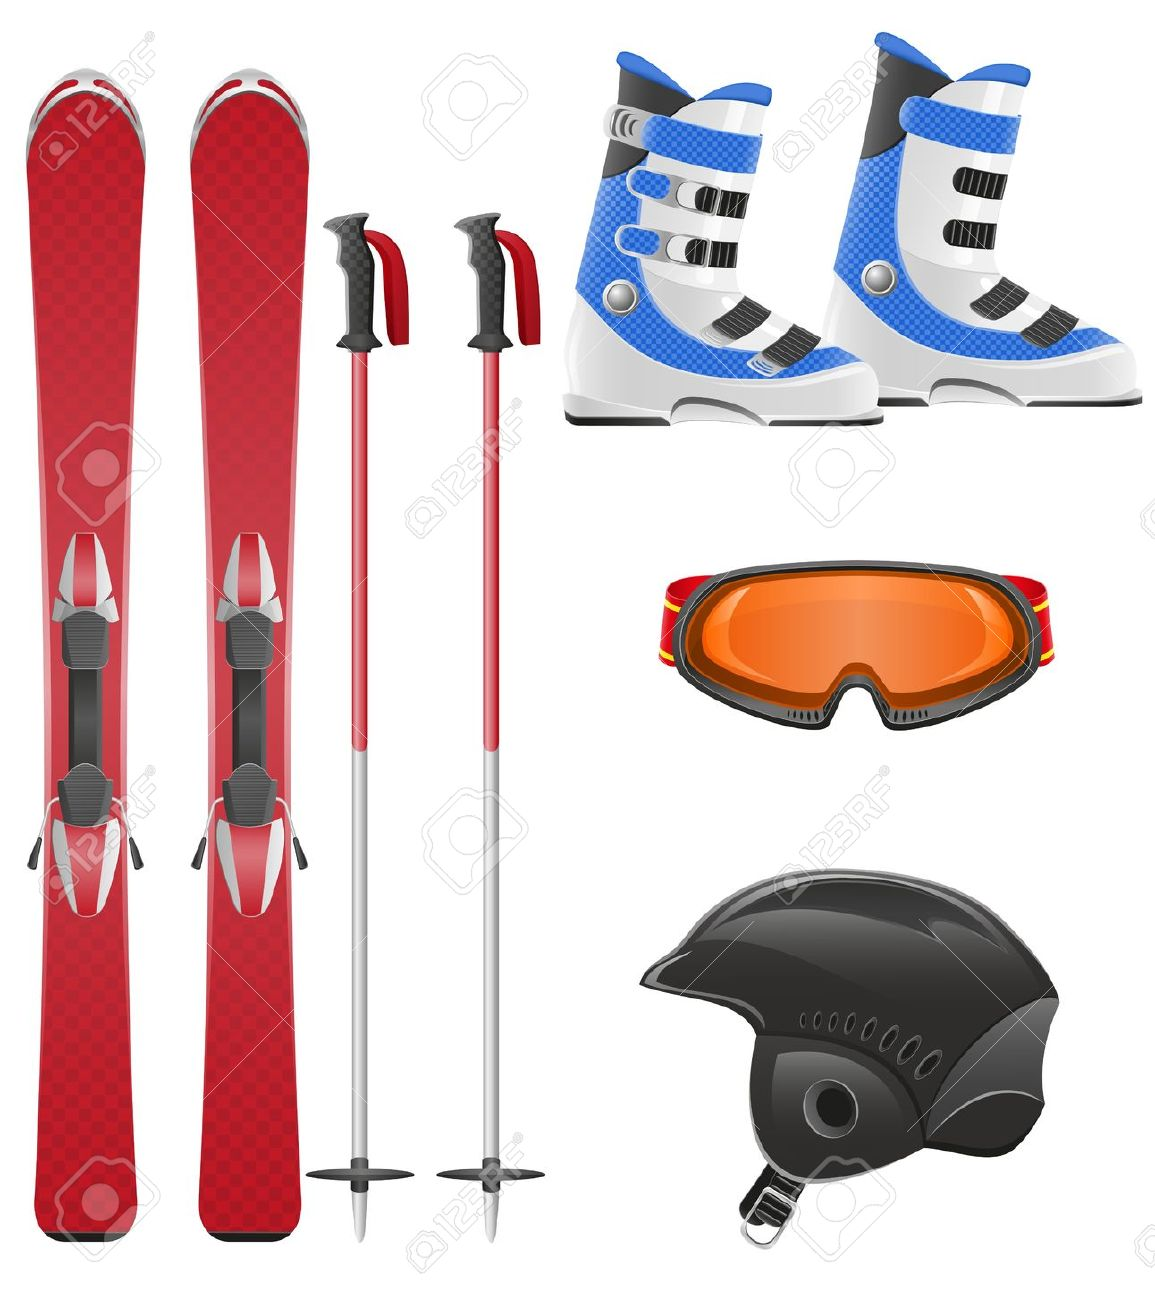 1,519 Ski Boots Stock Vector Illustration And Royalty Free Ski.